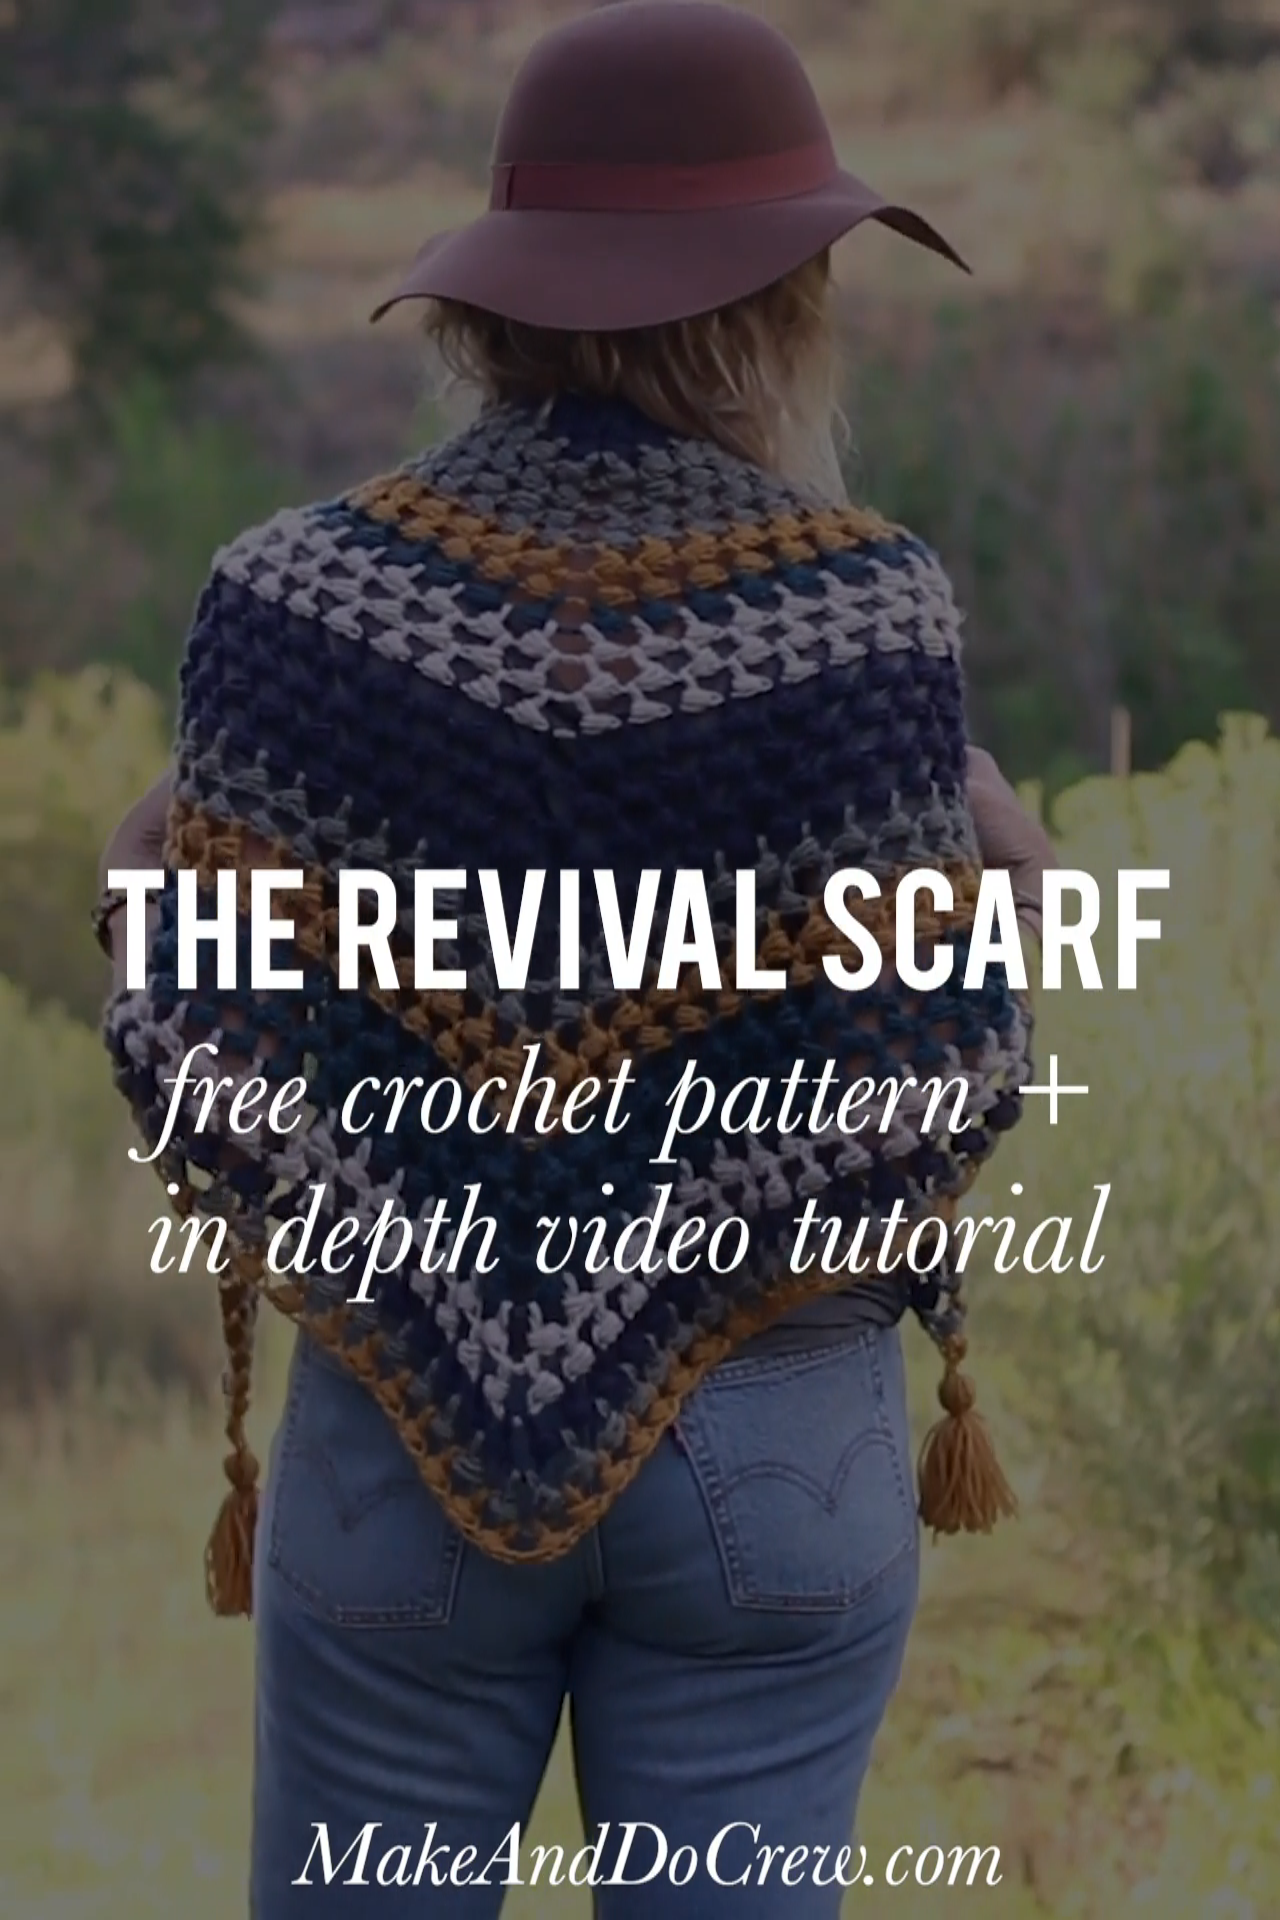 Crochet Triangle Scarf - Free Pattern + Video Tutorial #crochetscarves